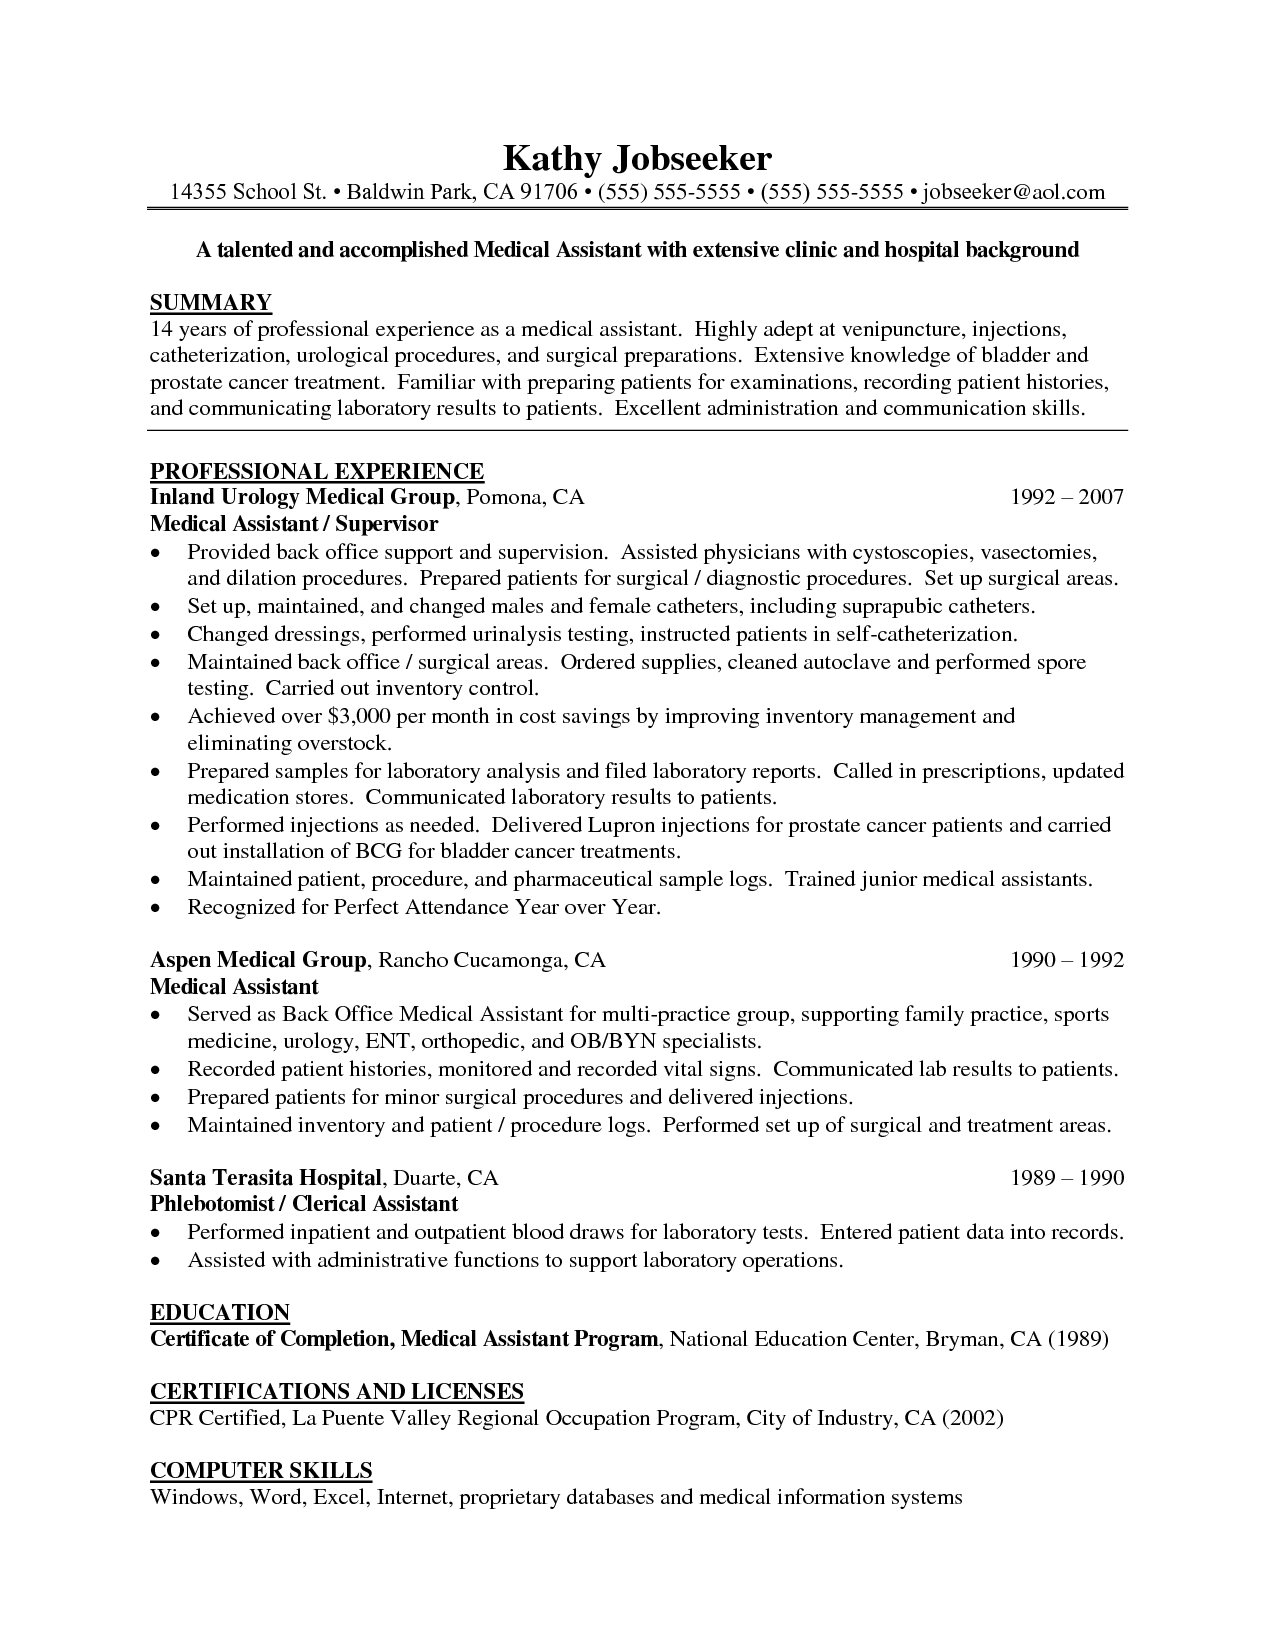 Resume For Certified Medical Assistant   Http://www.resumecareer.info/  Medical Assistant Job Description Resume